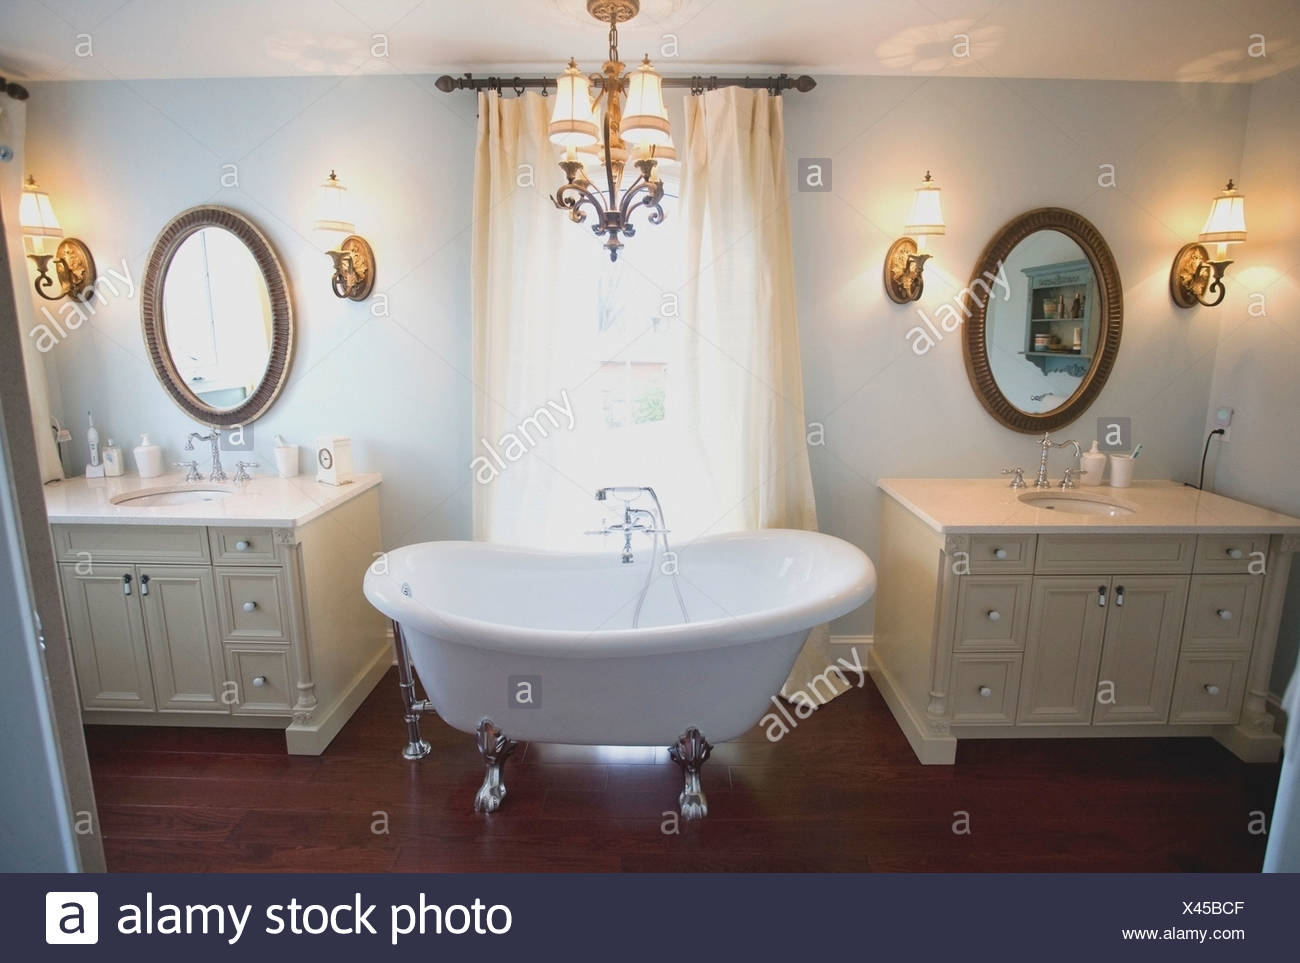 water with empress air accessories double ended htm p jetted pedestal tub and jet hydromassage package